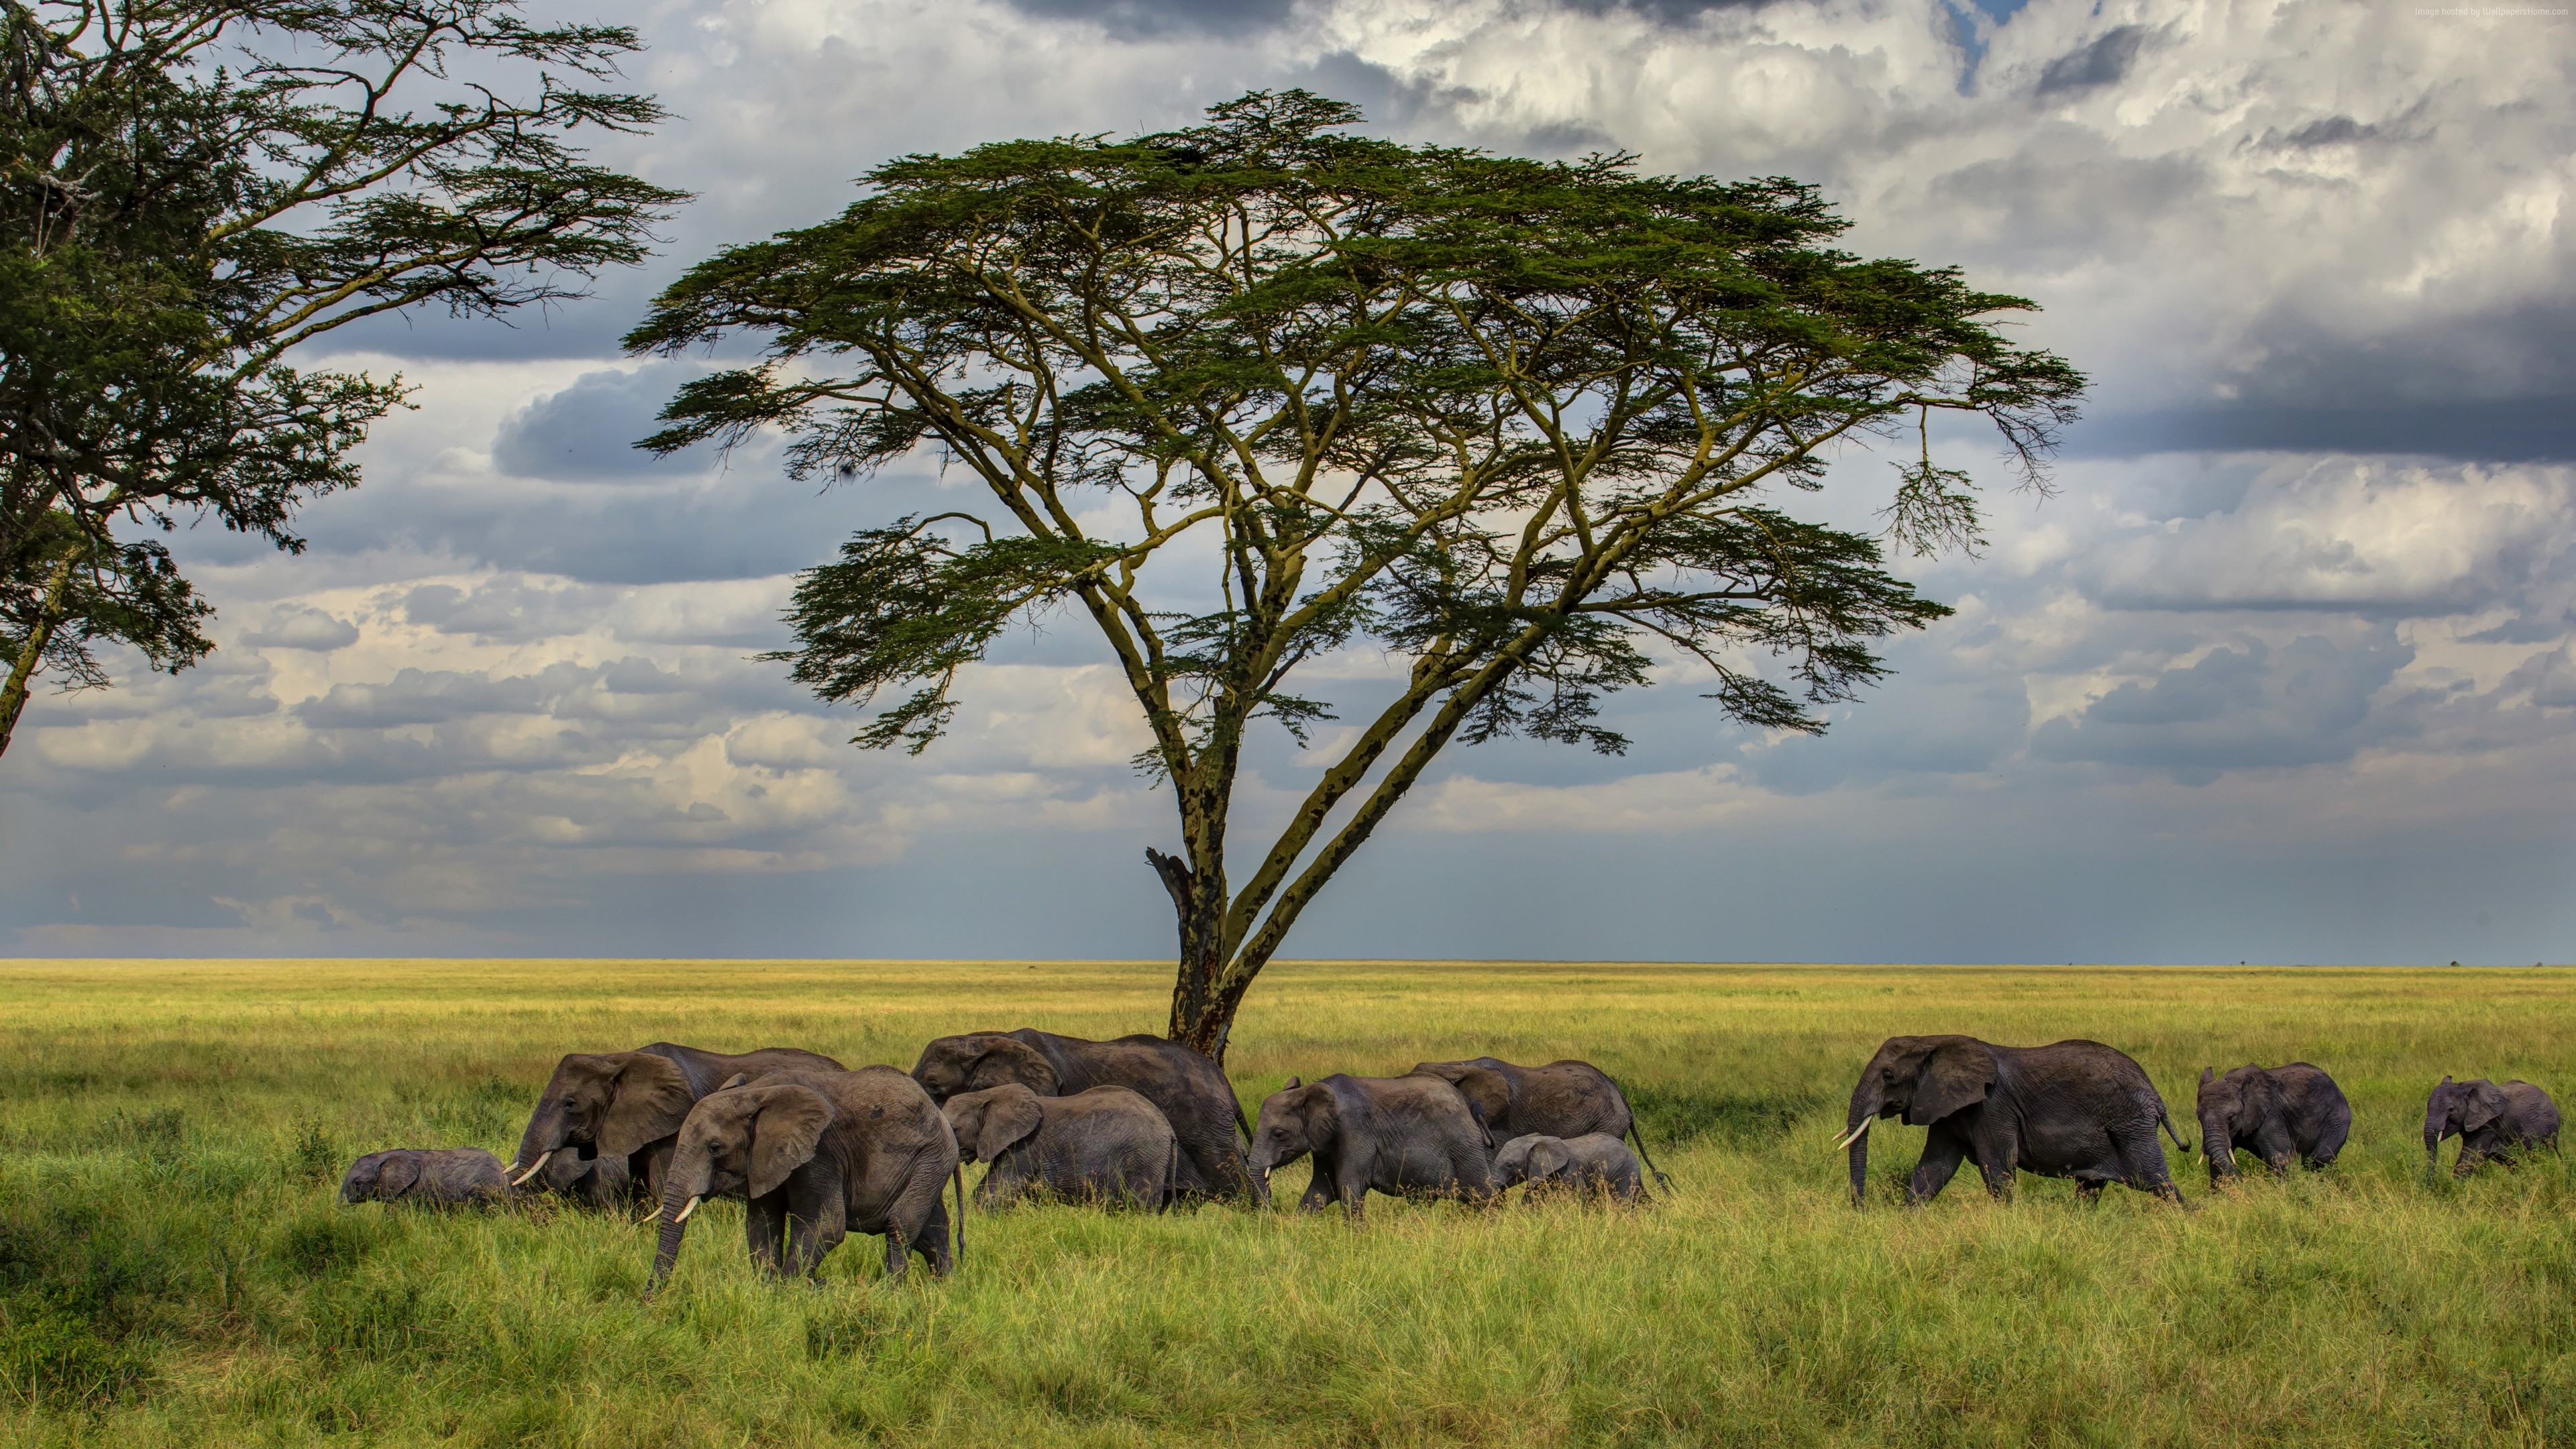 Wallpaper Elephant, 5k, 4k wallpaper, savanna, tree, clouds, Animals